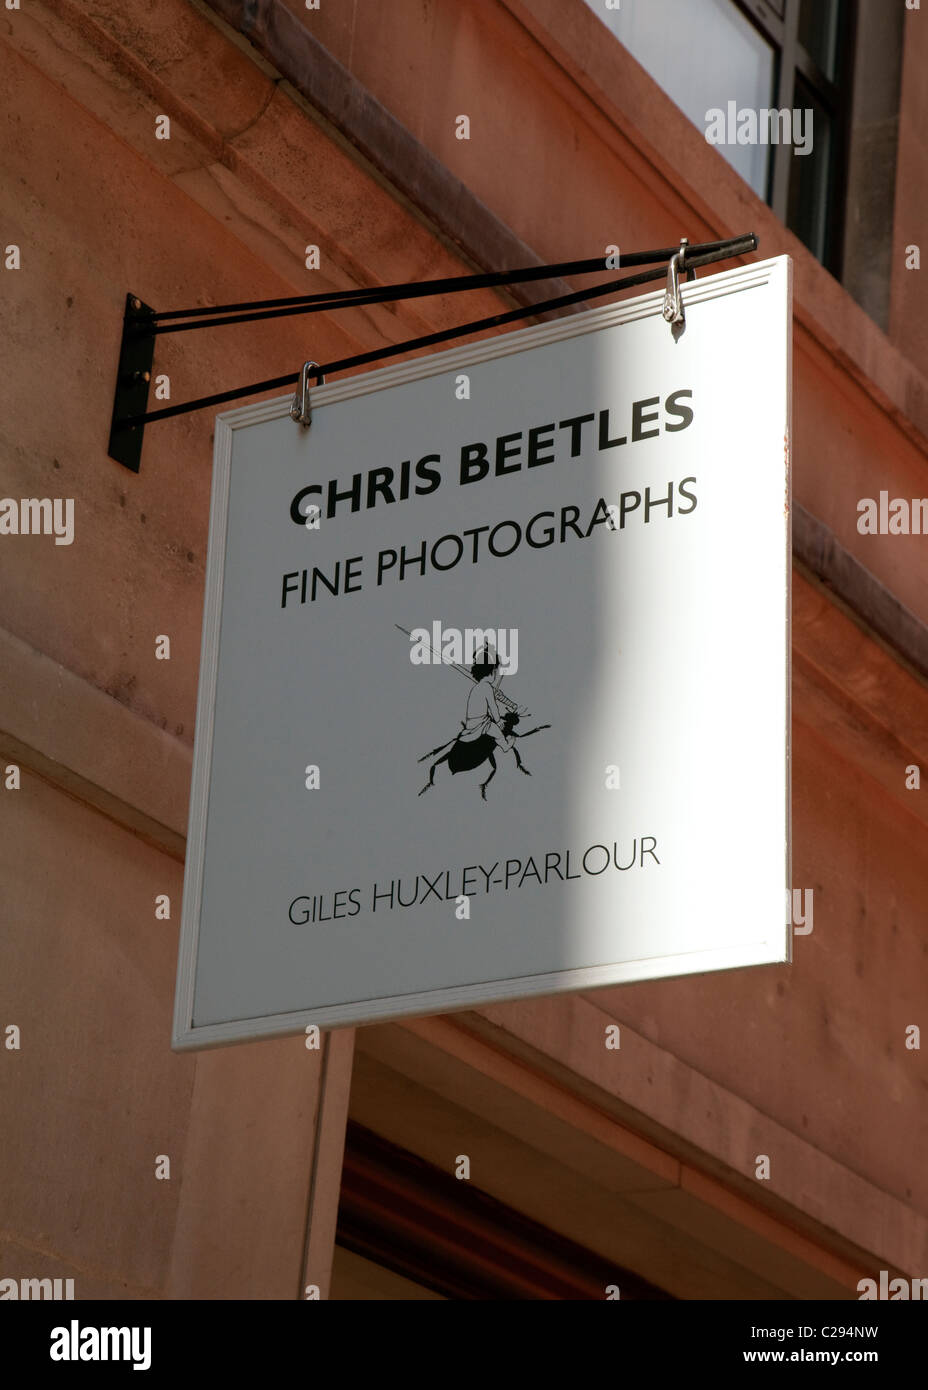 Sign on Chris Beetles Fine Photographs gallery, Swallow Street, London - Stock Image